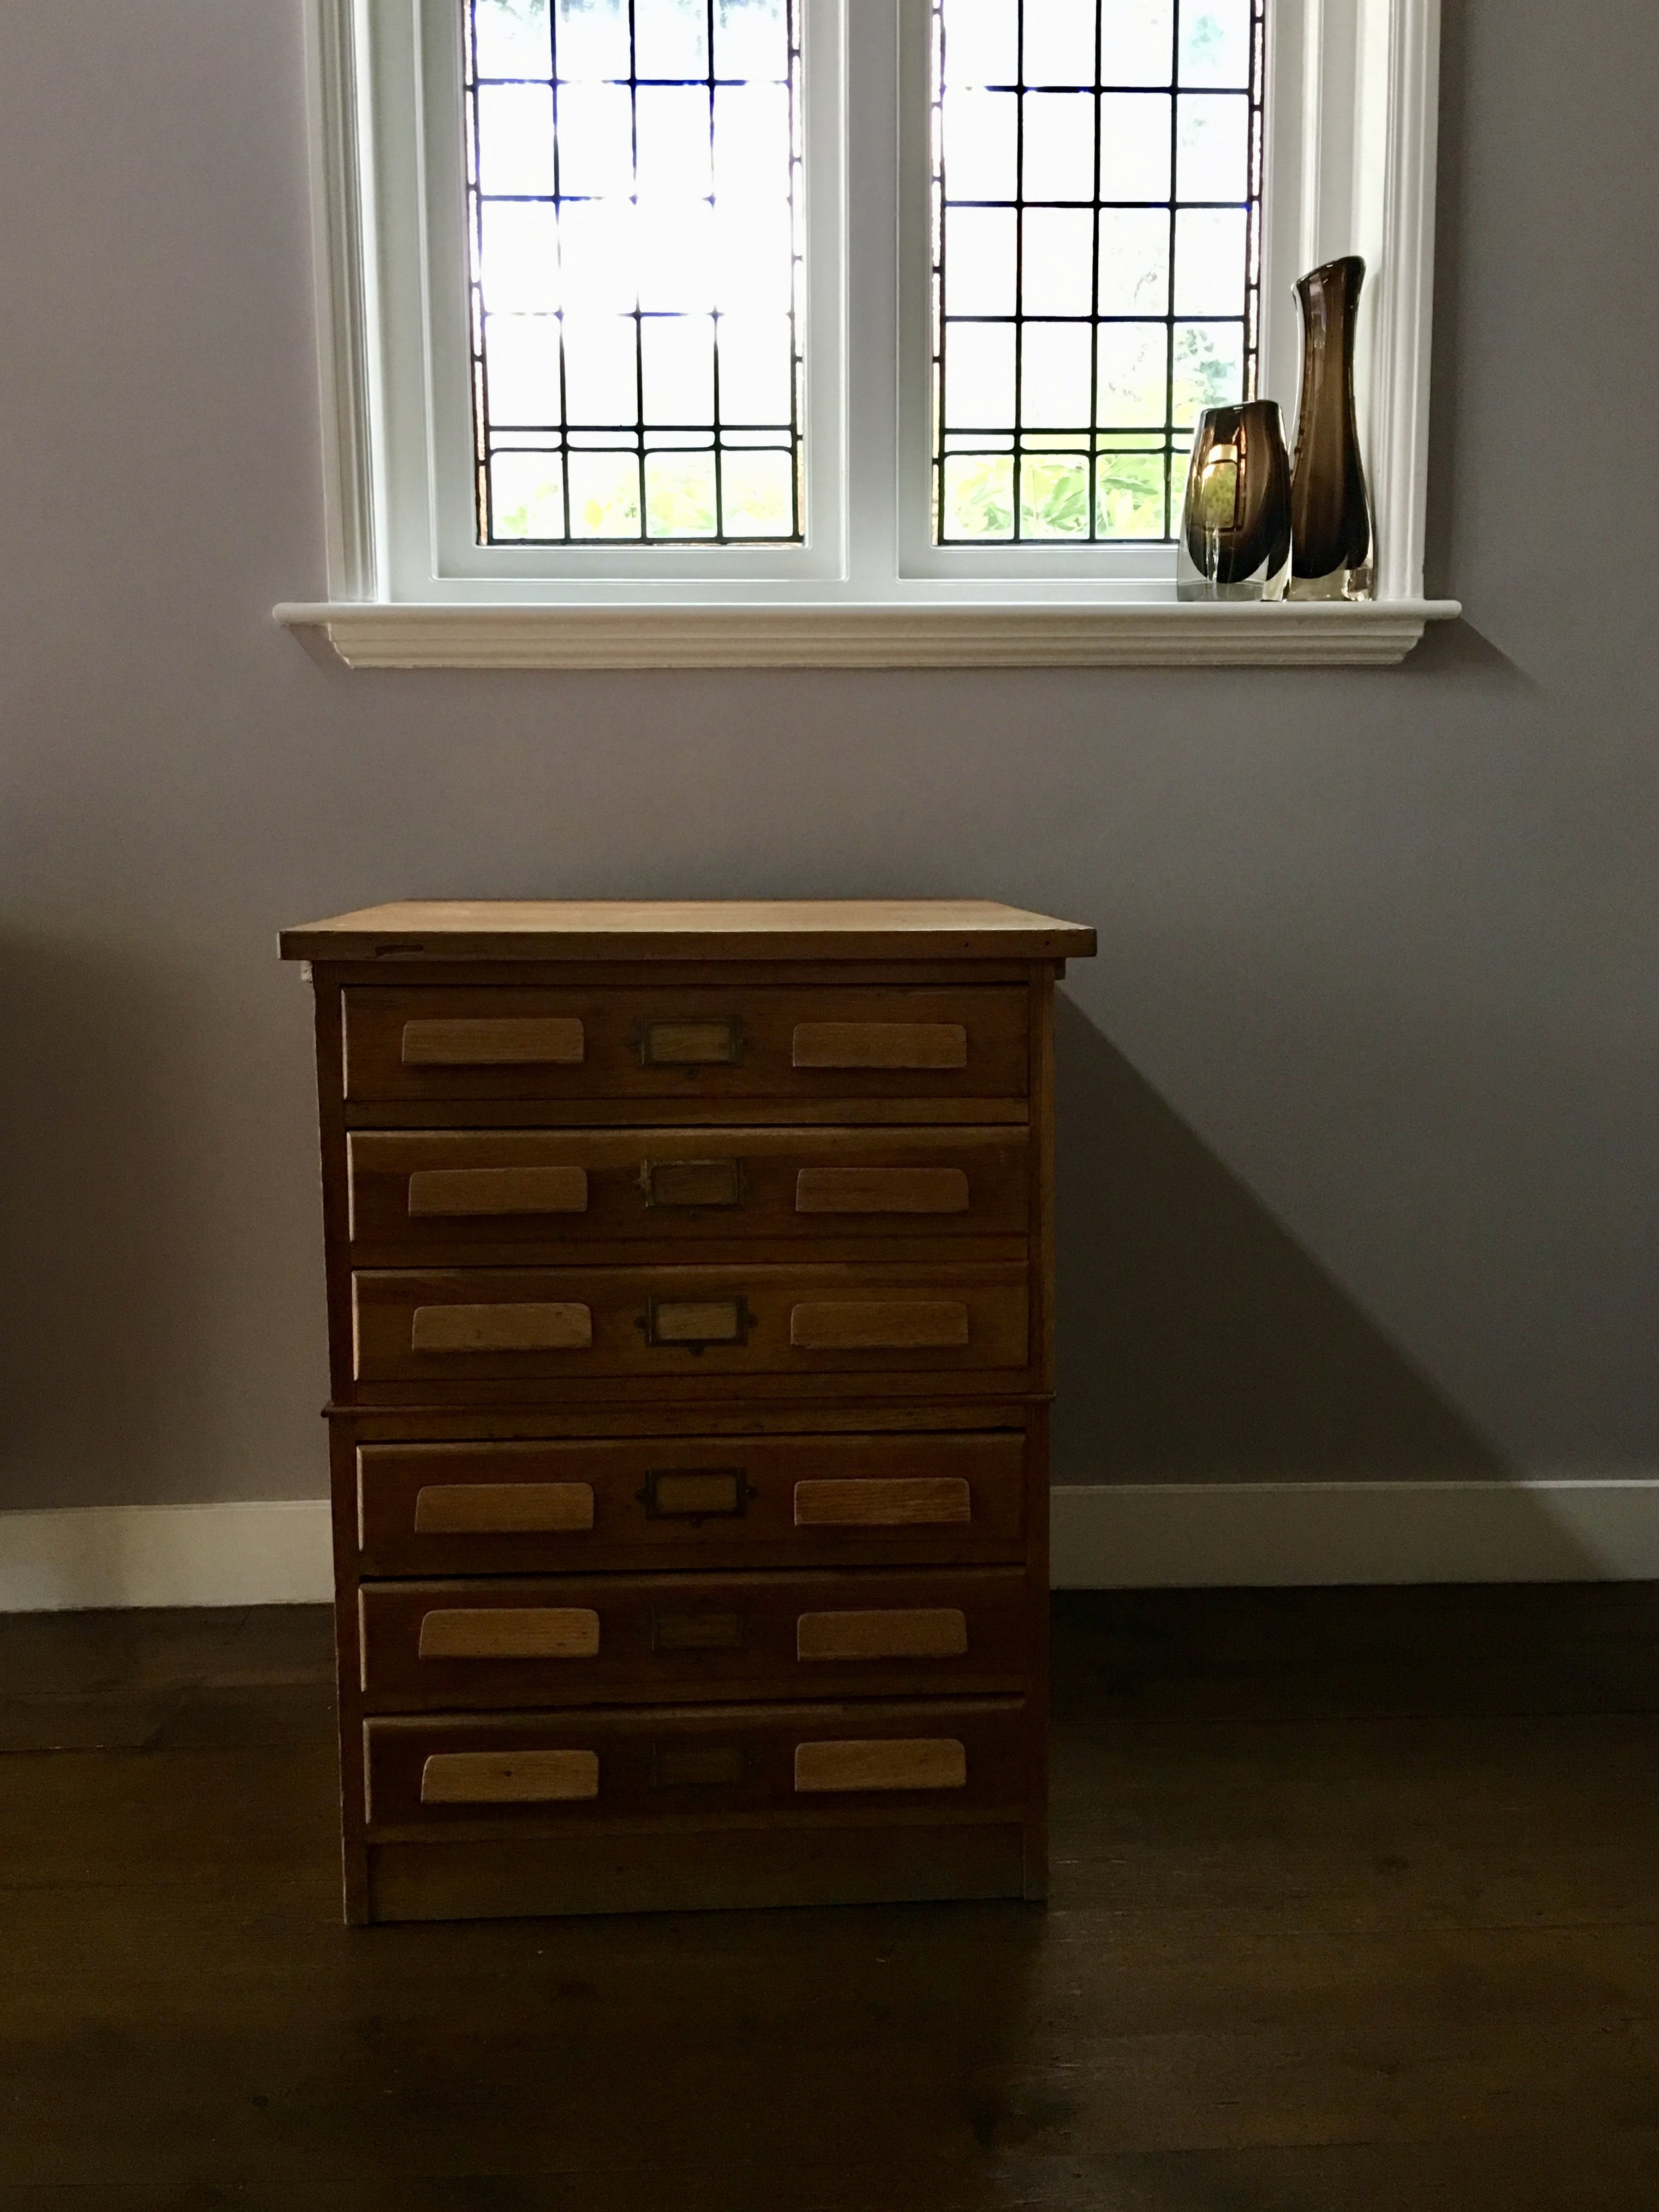 - Perfect for my painting things. Really pleased with the chest. Thank you.Julie, West Midlands